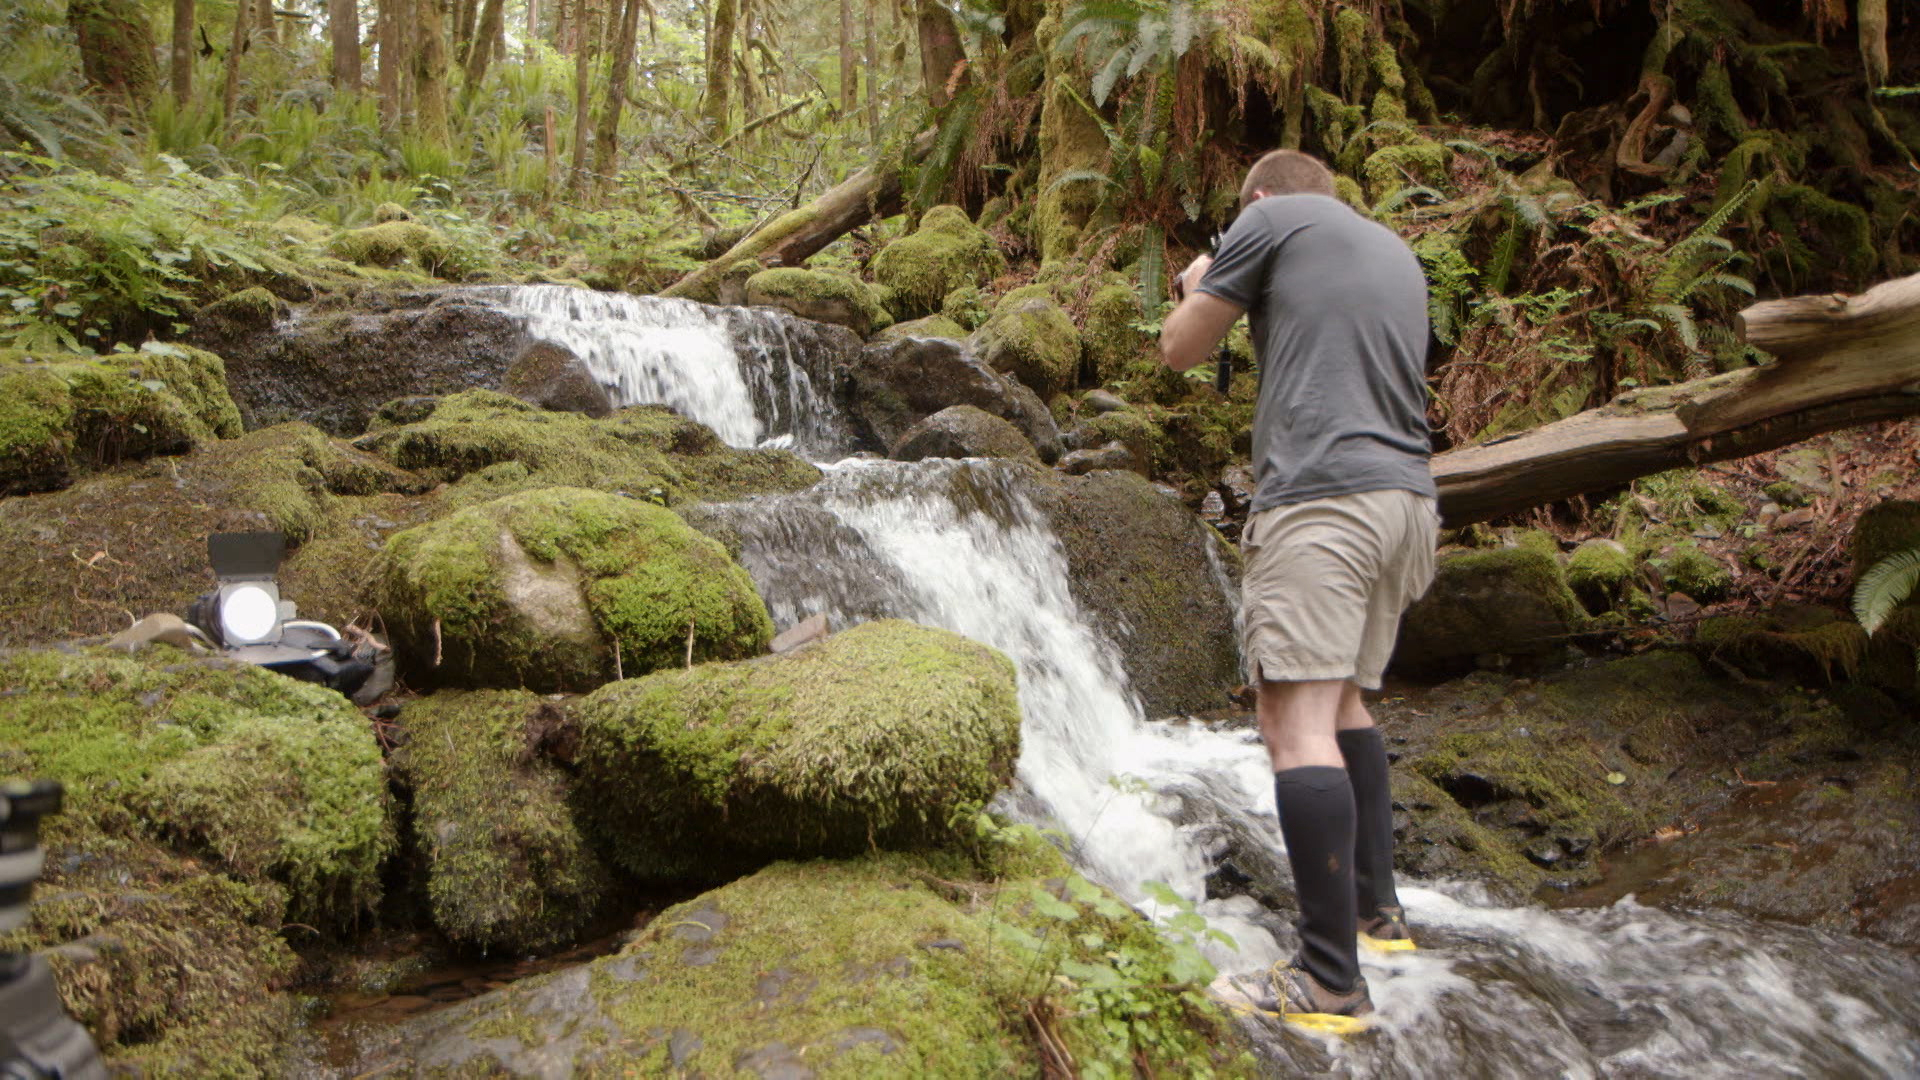 Introduction to shooting a waterfall: Photographing a Waterfall